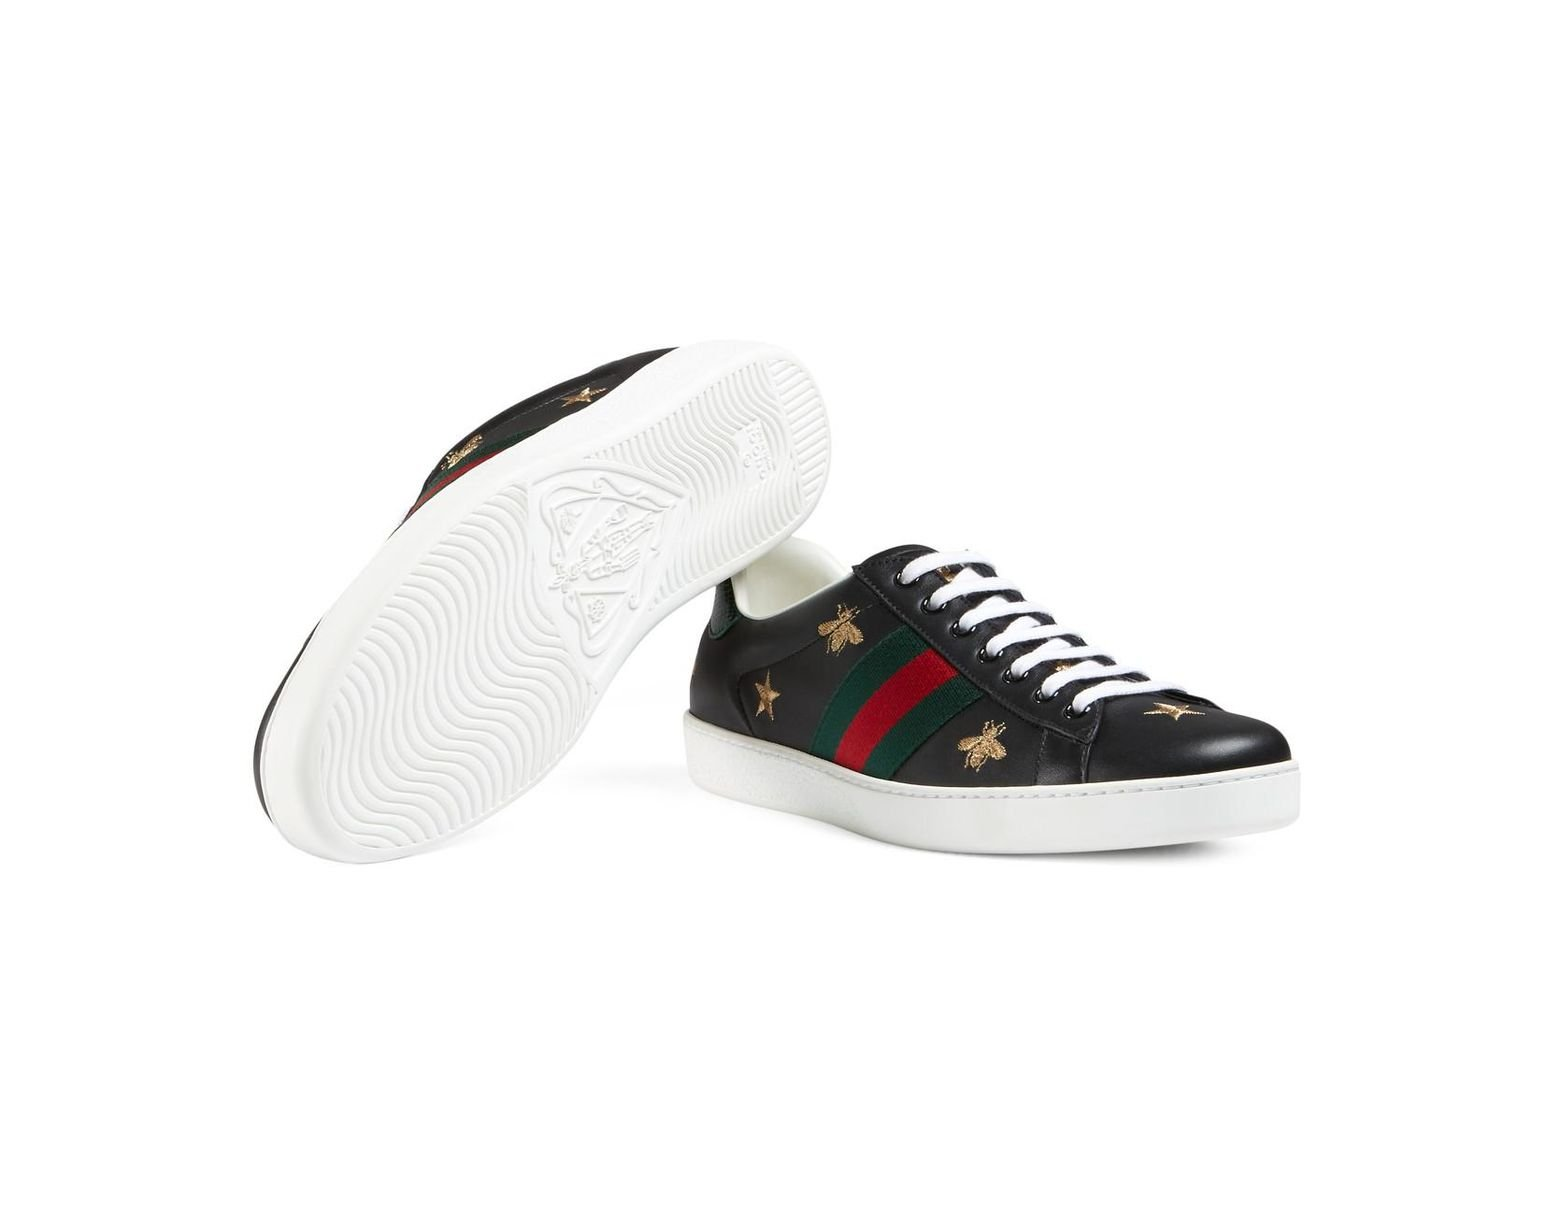 079de72ba Lyst - Gucci Ace Embroidered Sneaker for Men - Save 21%